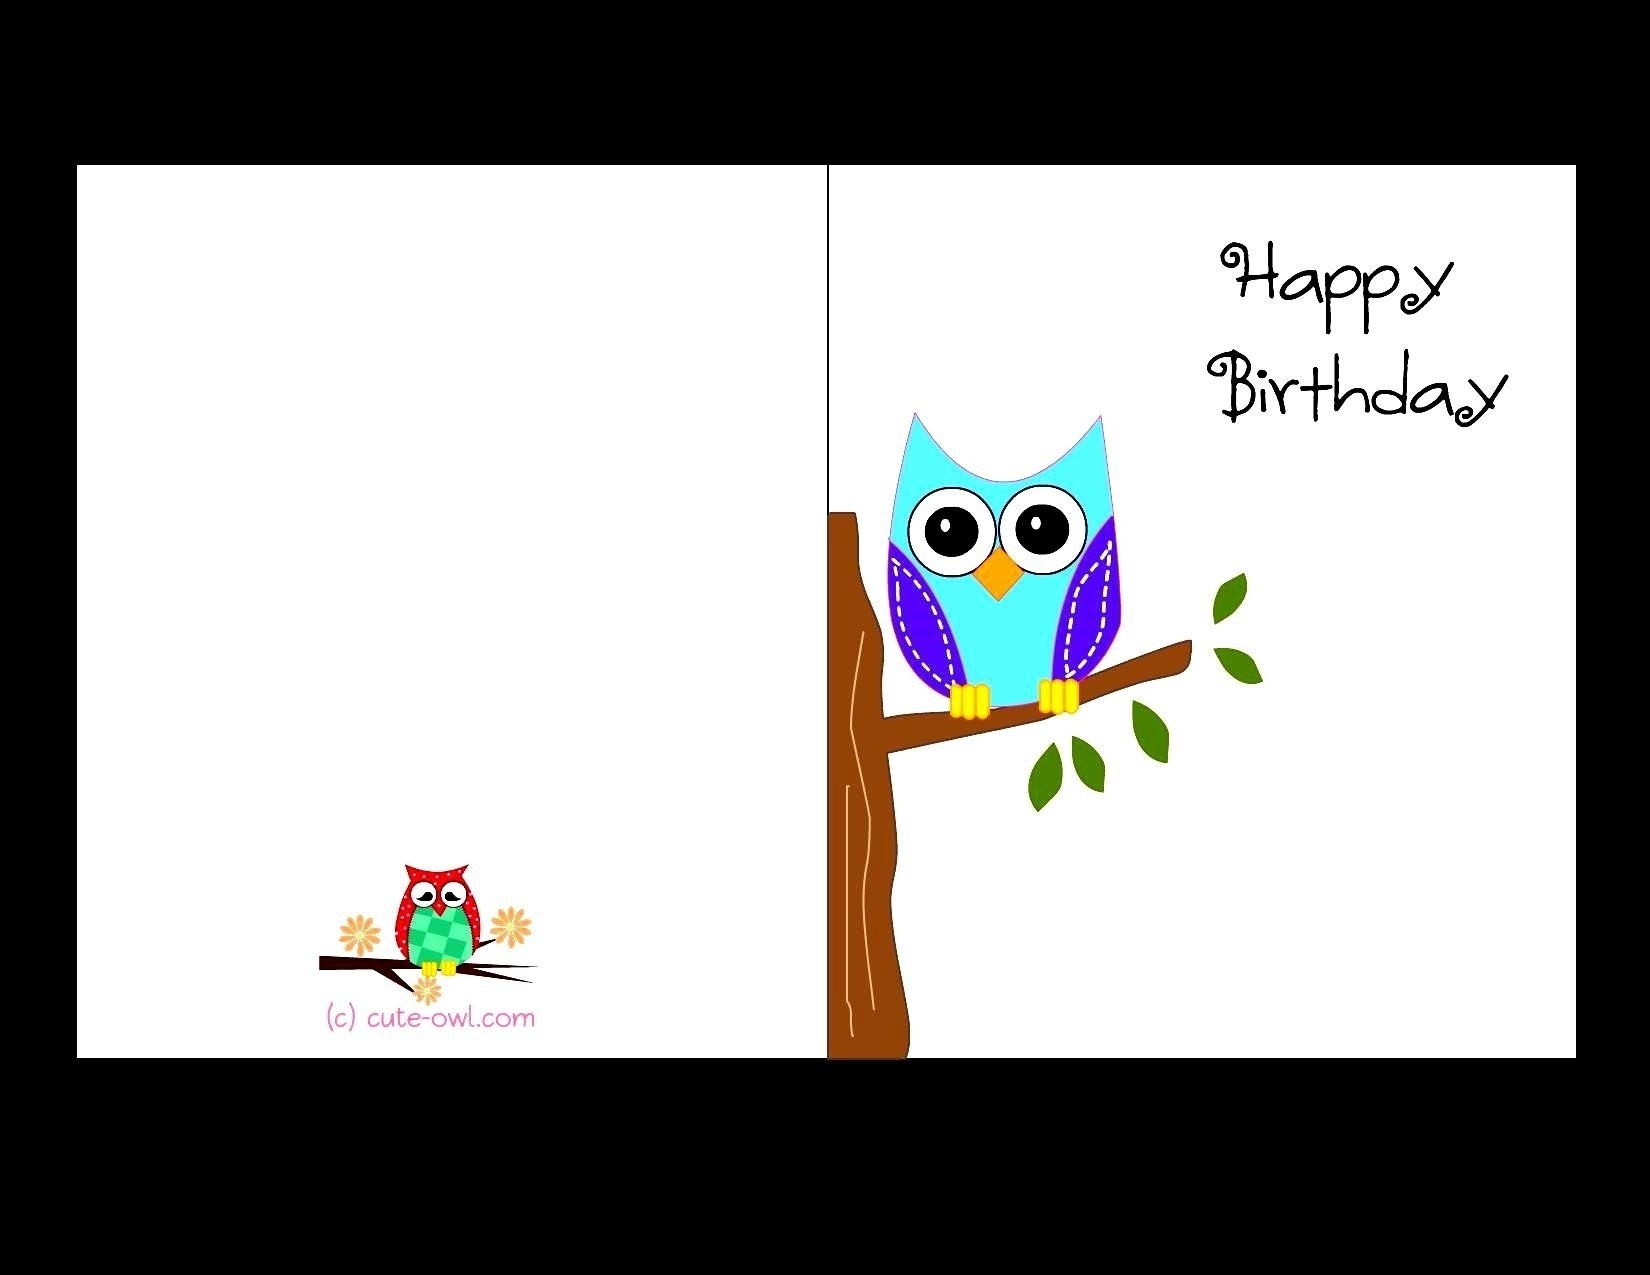 Free Printable Birthday Cards For Adults | World Of Label - Free Printable Birthday Cards For Adults